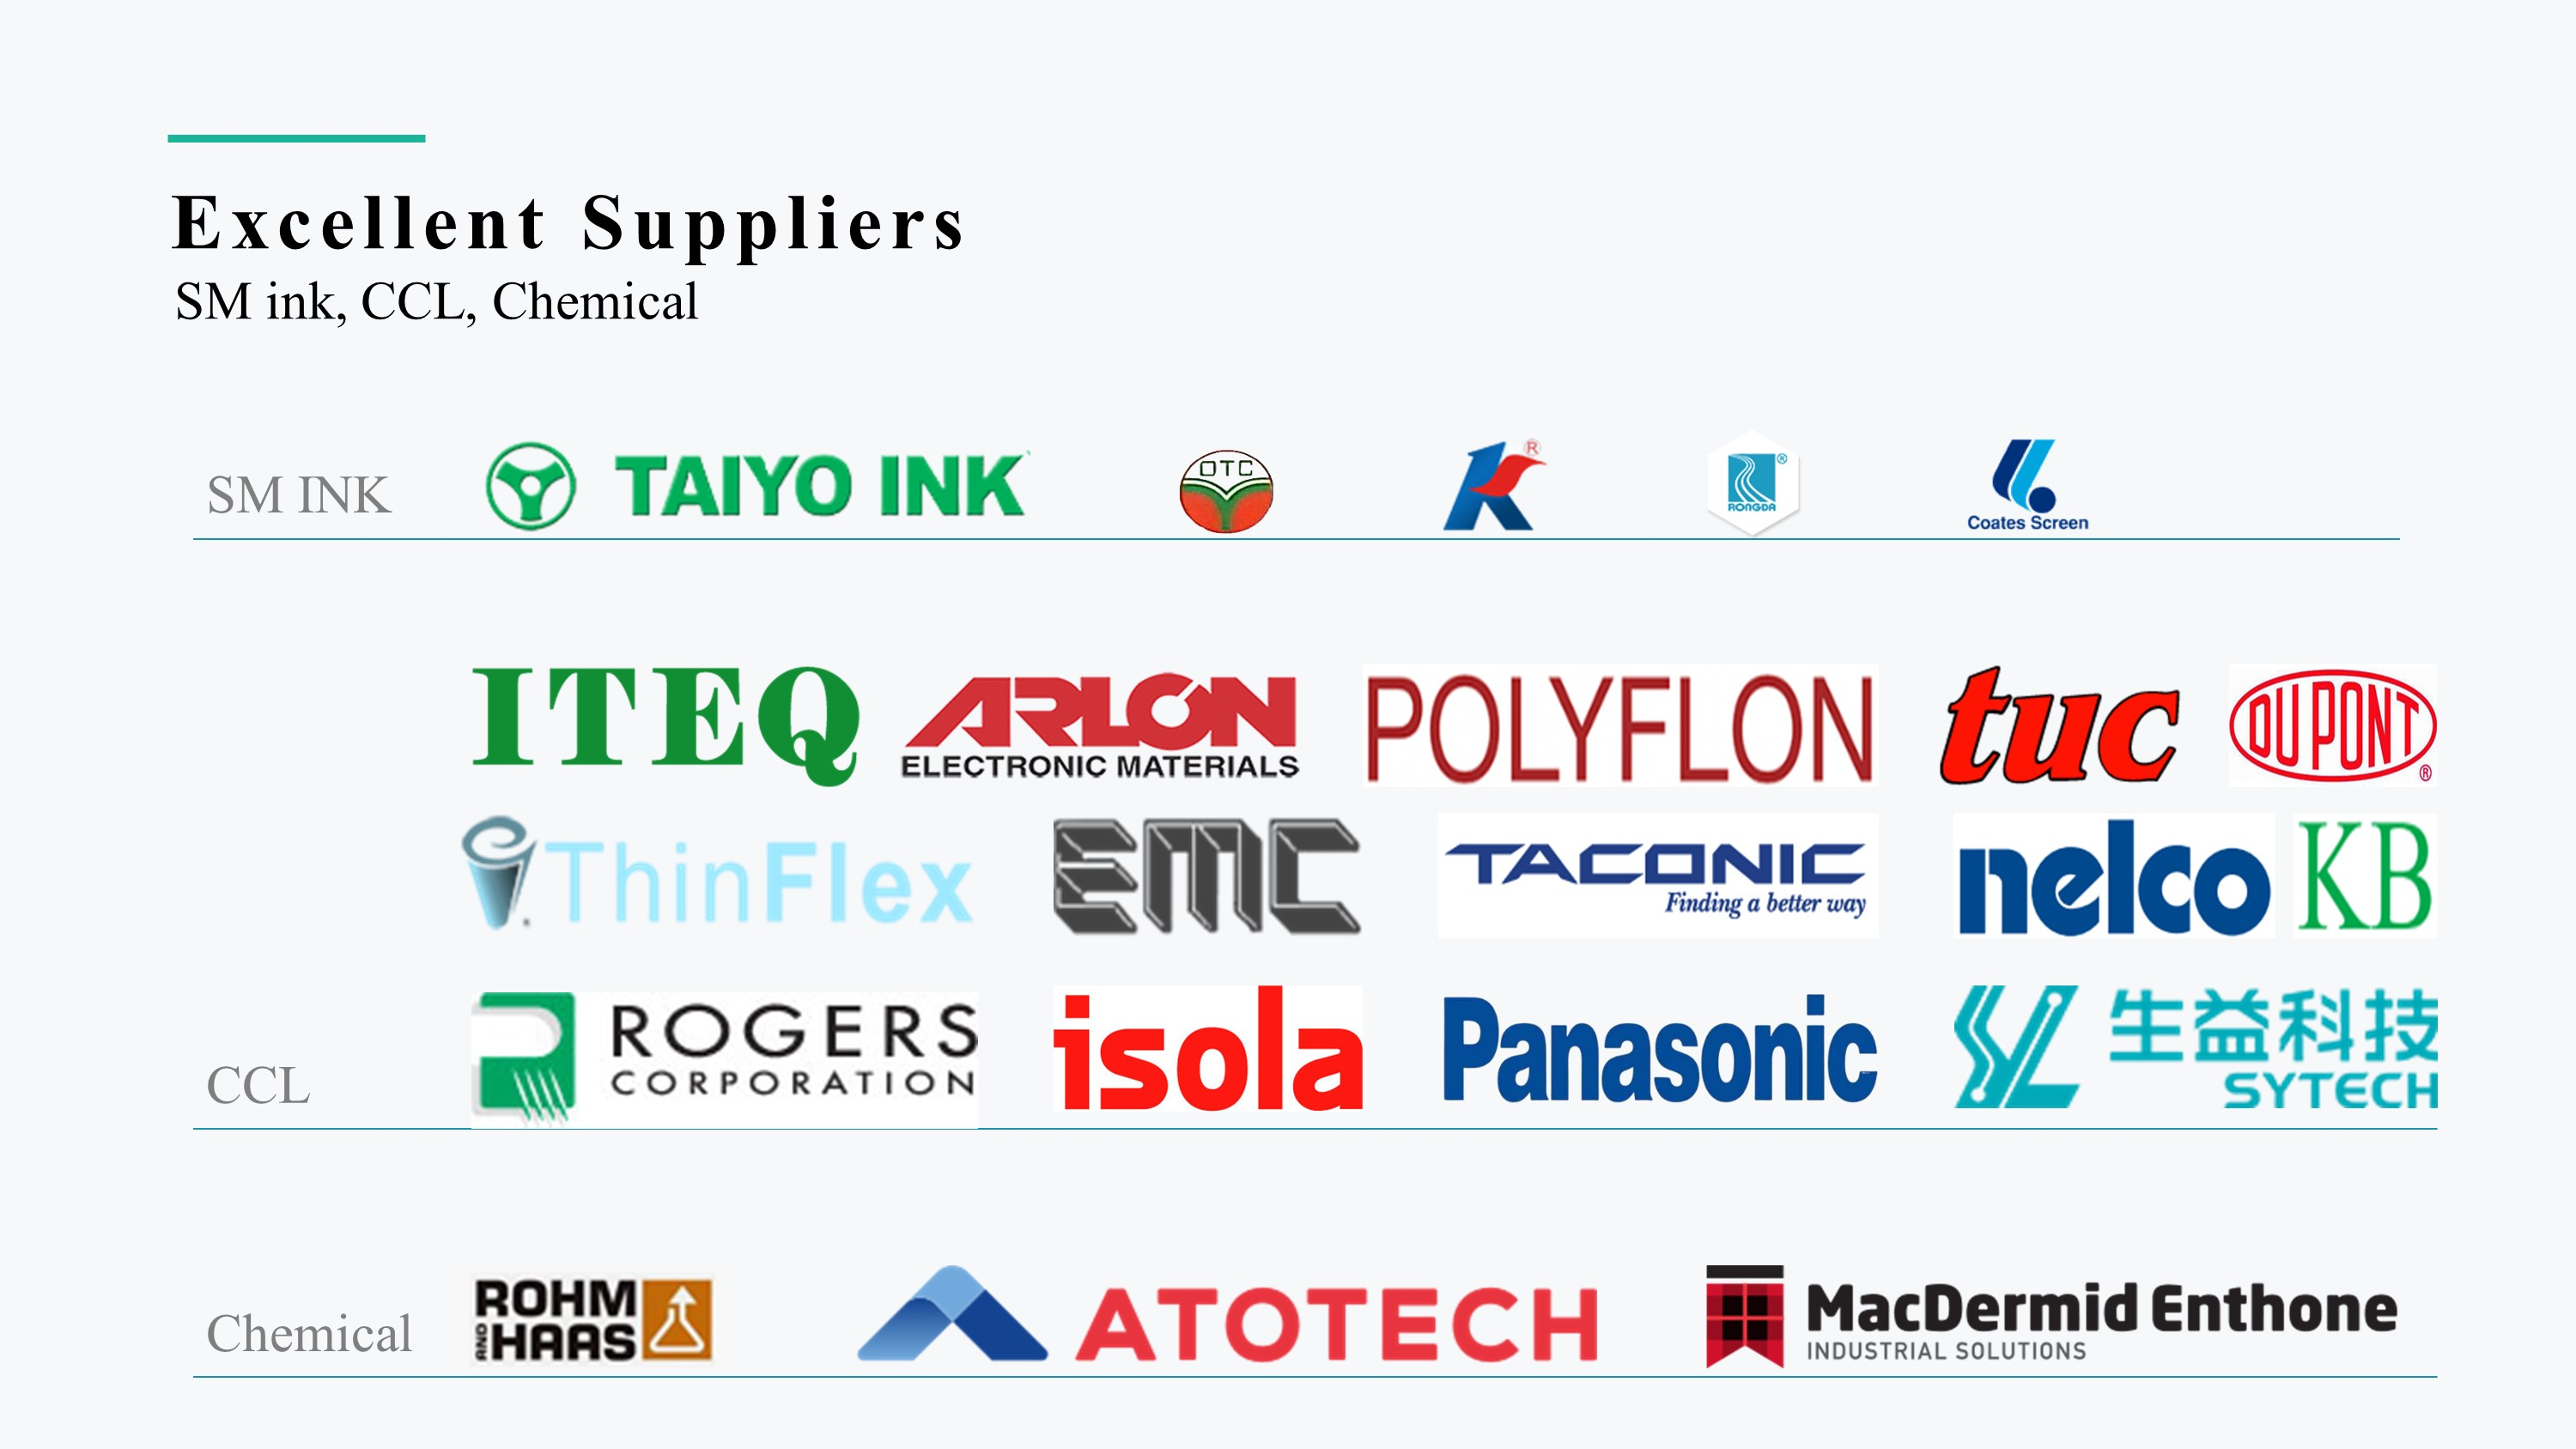 Excellent Suppliers - SM ink, CCL, Chemical